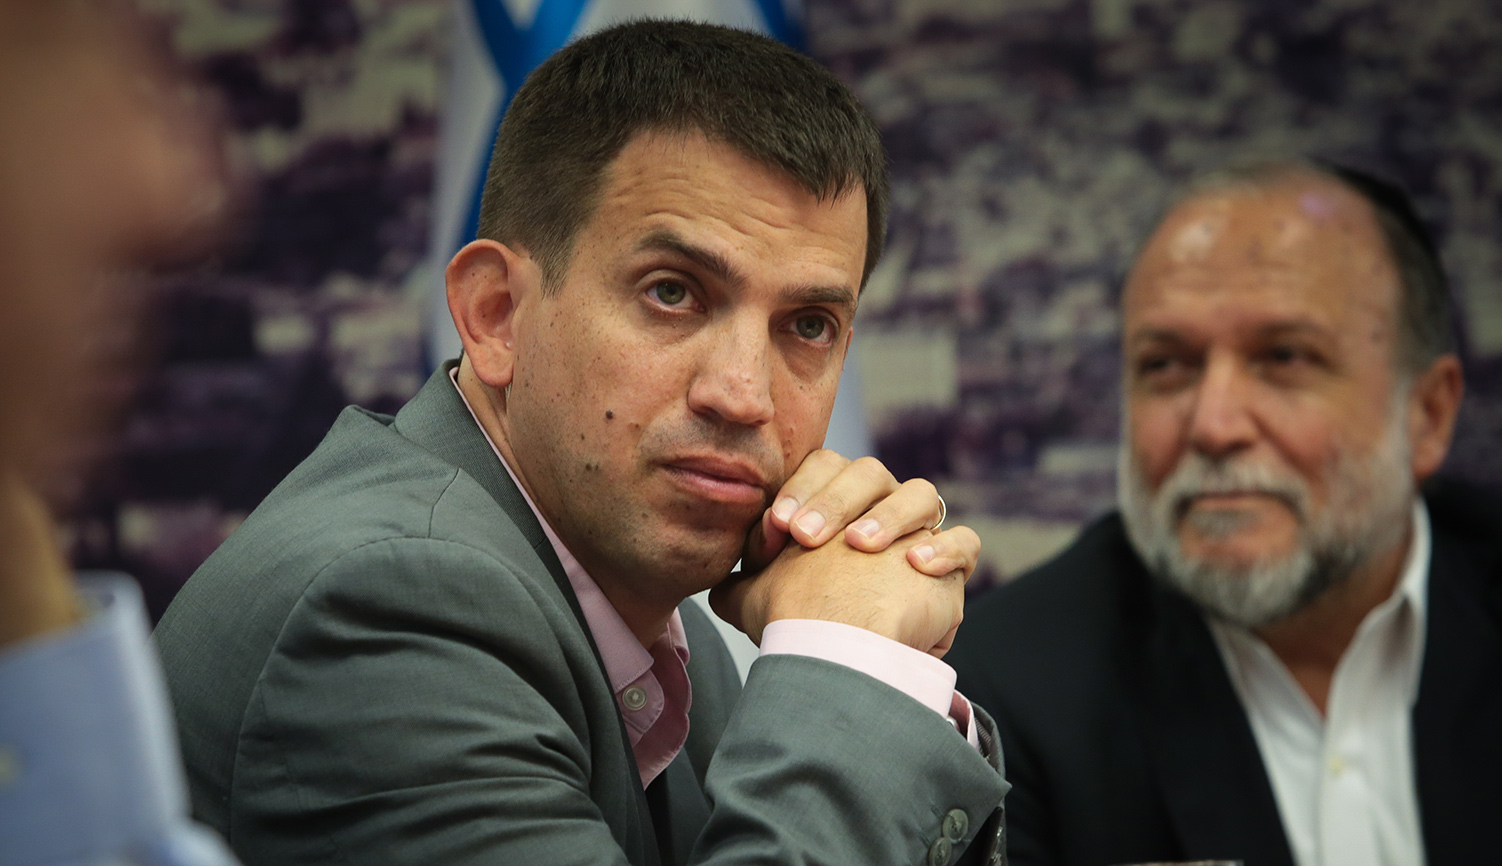 Former director of Israel's Budgets Department Shaul Meridor at the Finance Ministry in Jerusalem on September 23, 2019. Flash90.